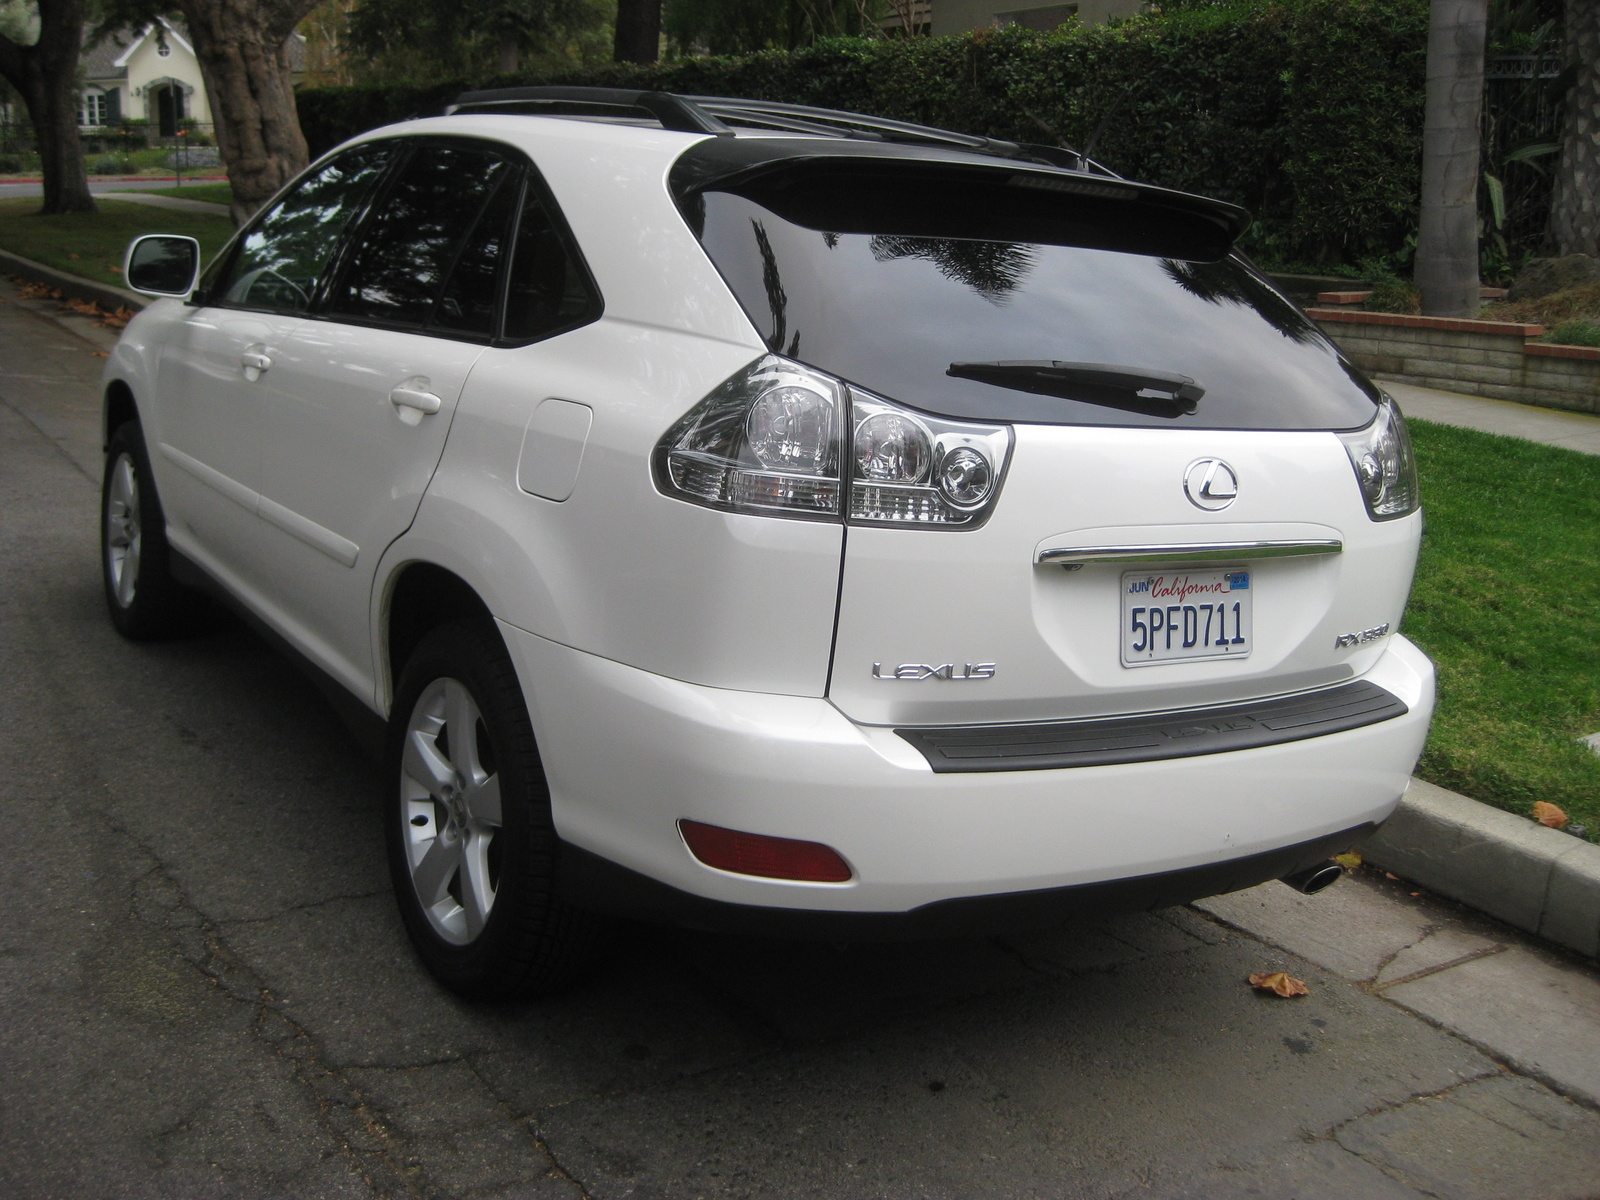 Lexus RX 330 2005 photo - 5